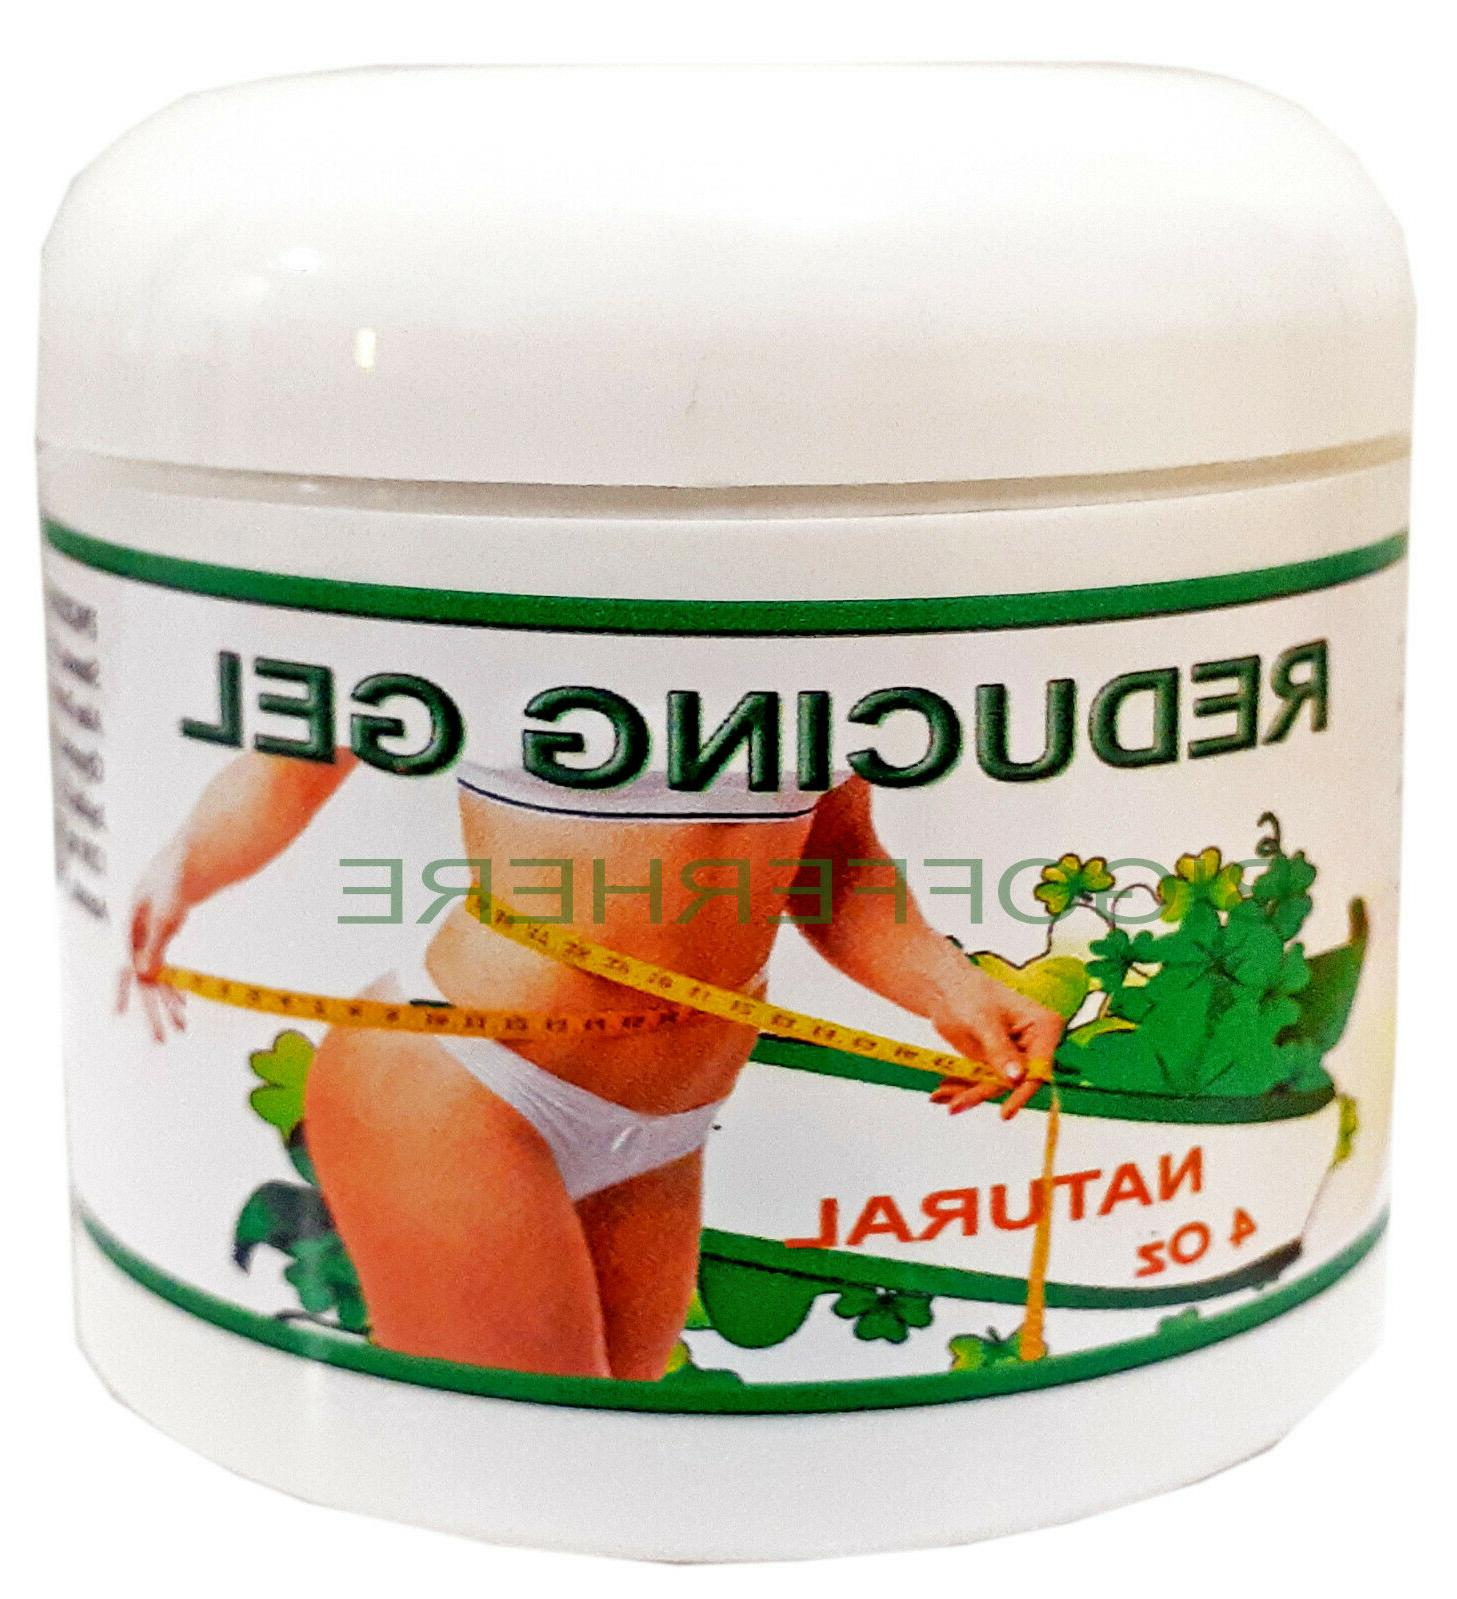 Fat Burner Hot Cream Weight Loss Belly Slimming Fitness Body